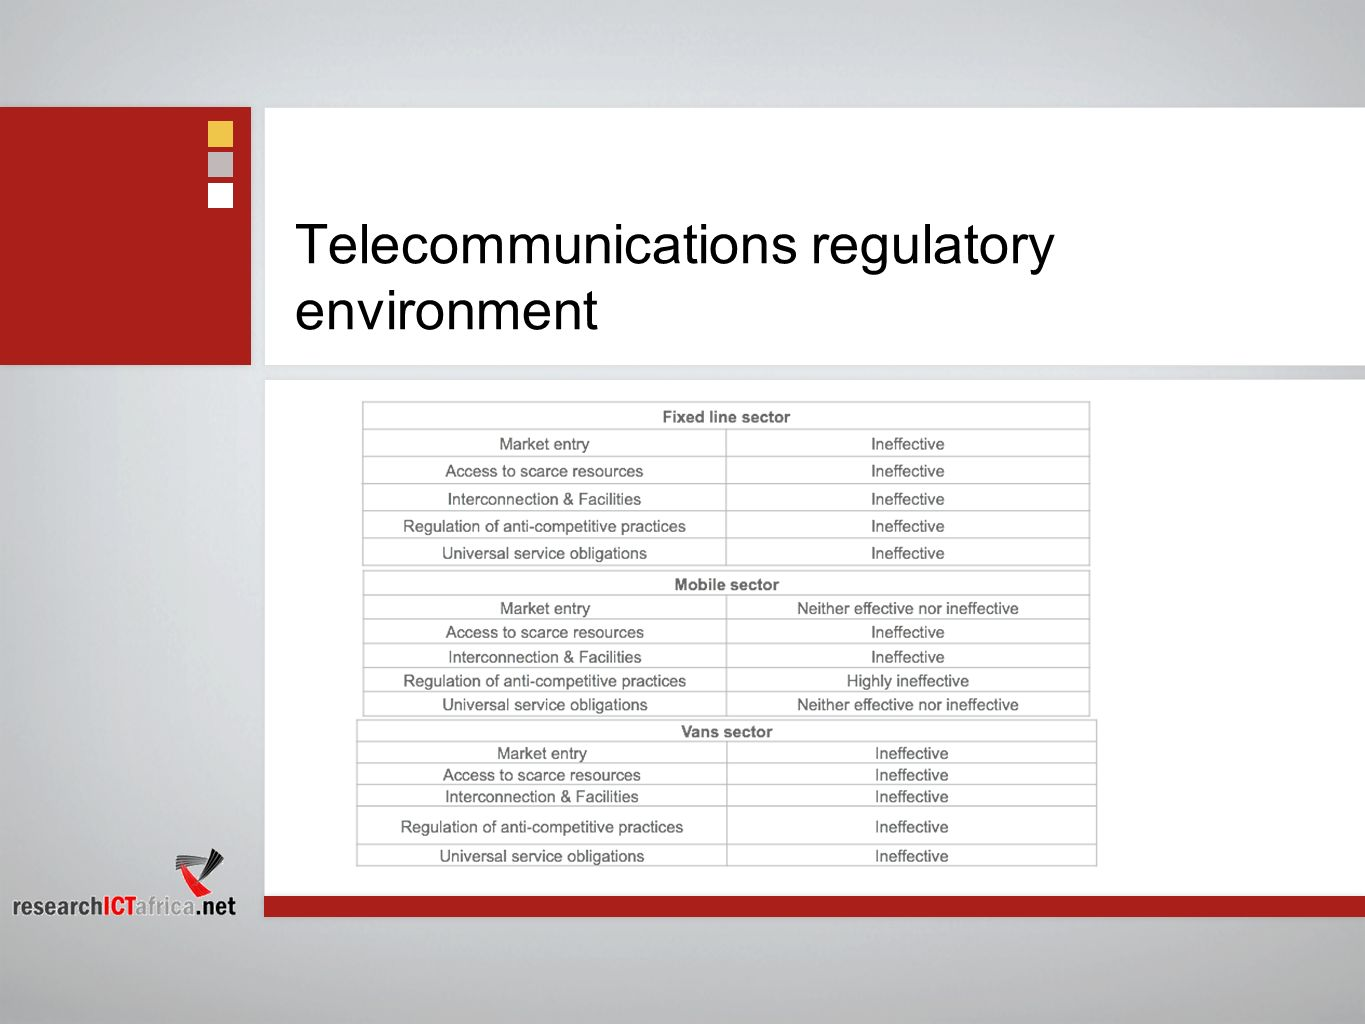 Telecommunications regulatory environment